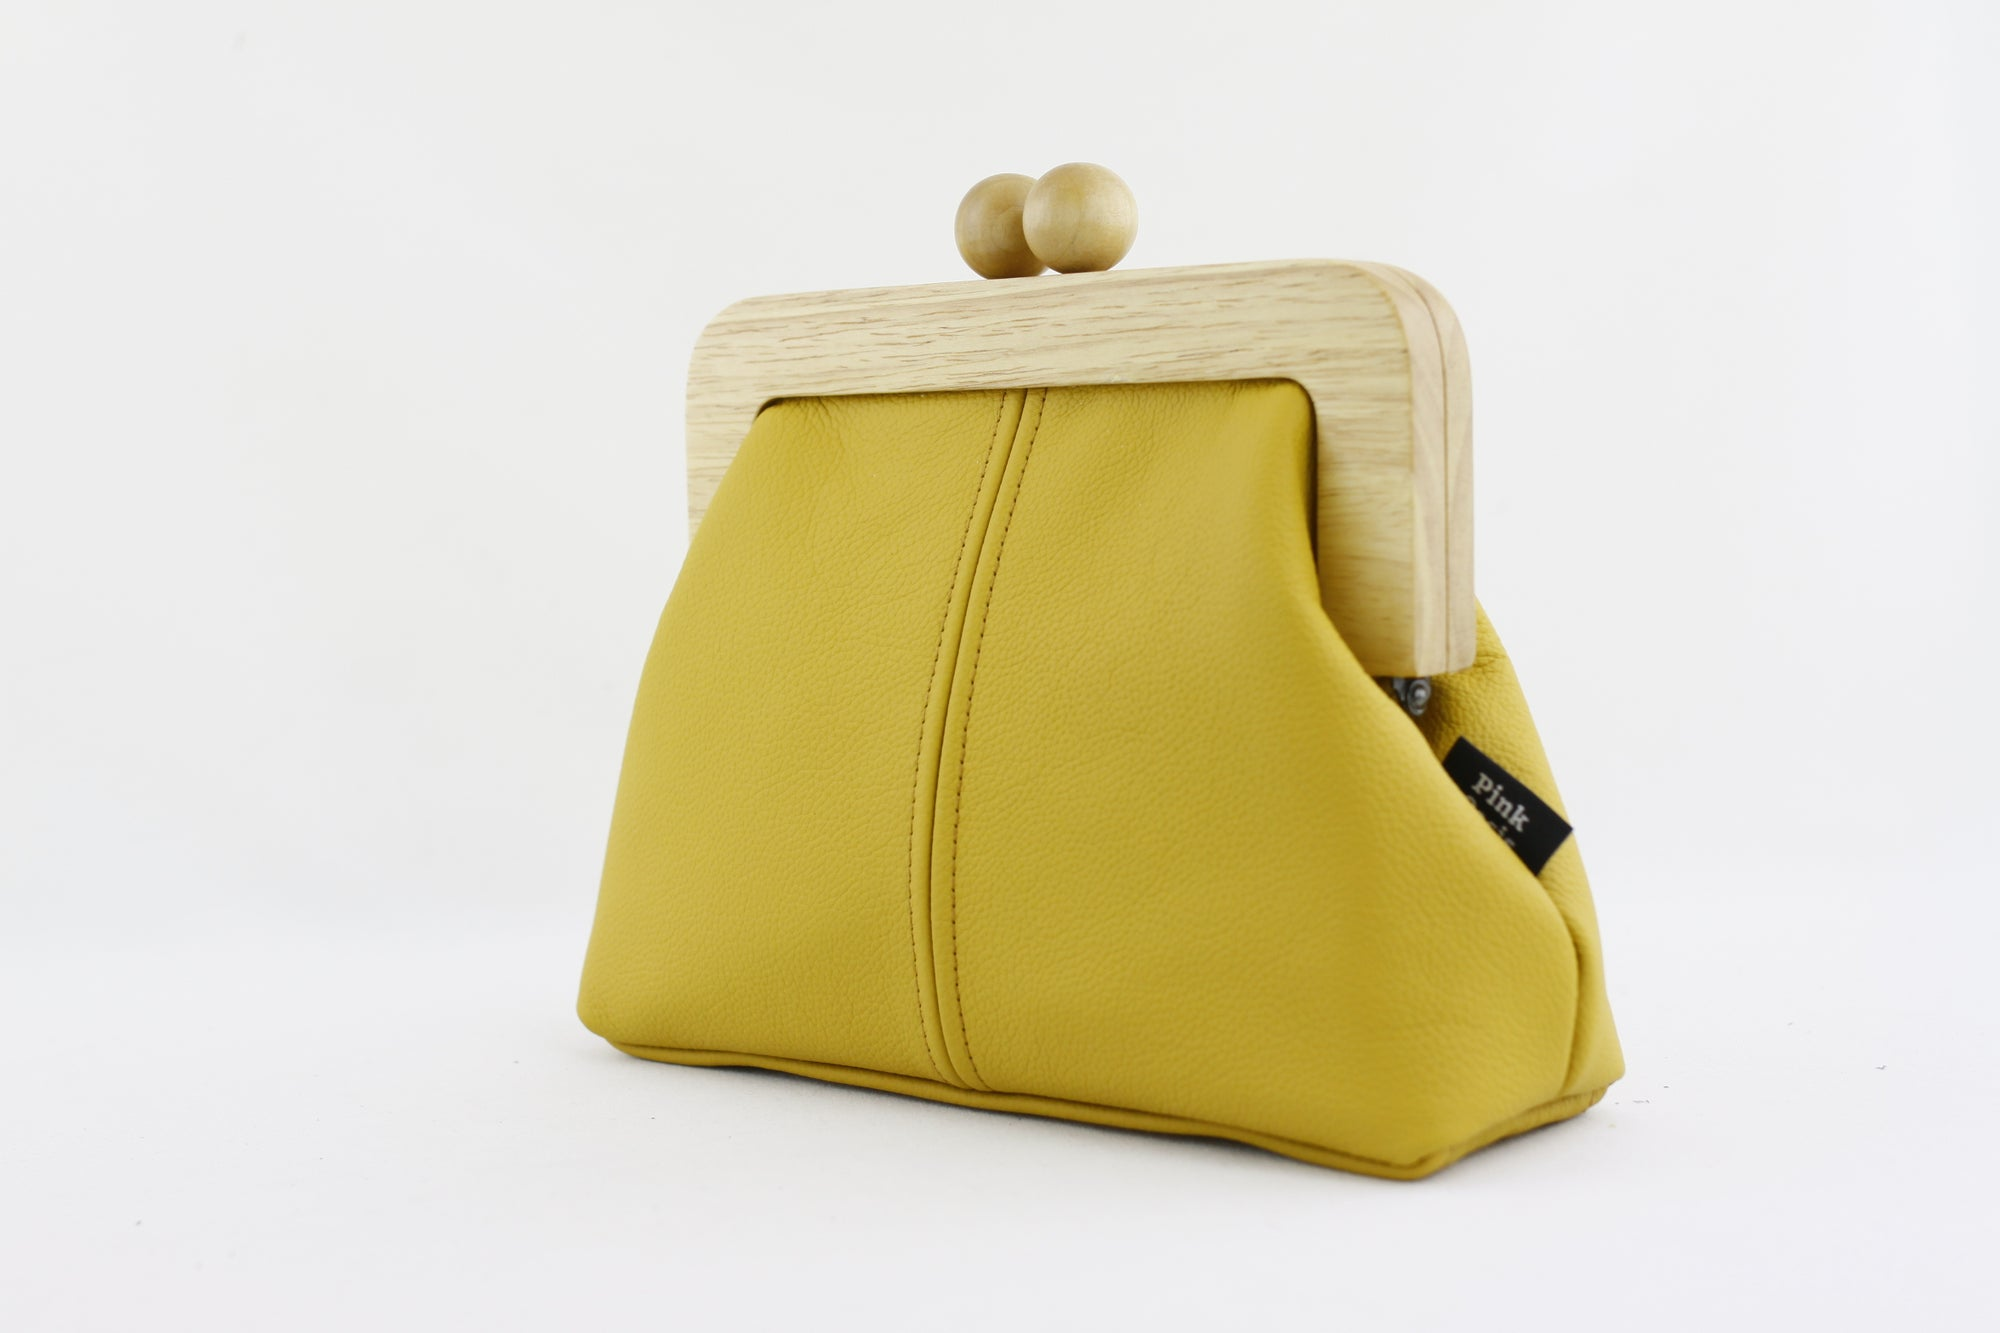 Mustard Genuine Leather Clutch Bag with Leather Strap | PINKOASIS